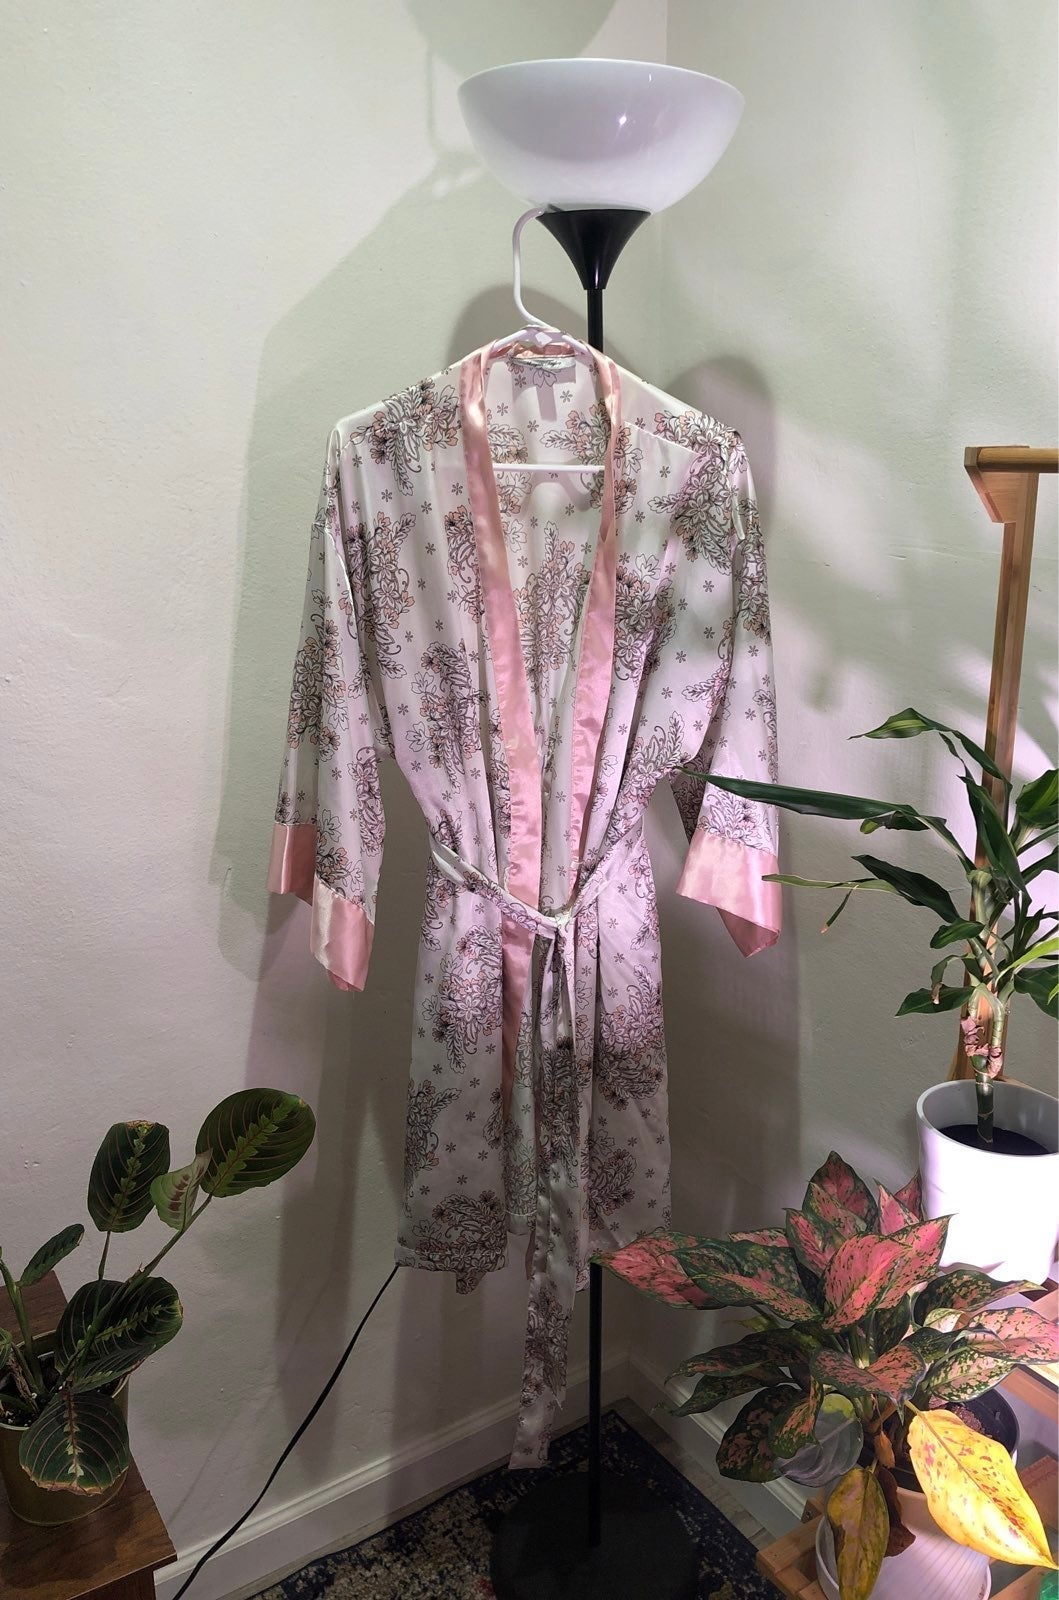 L/XL unused, white and pink satin robe